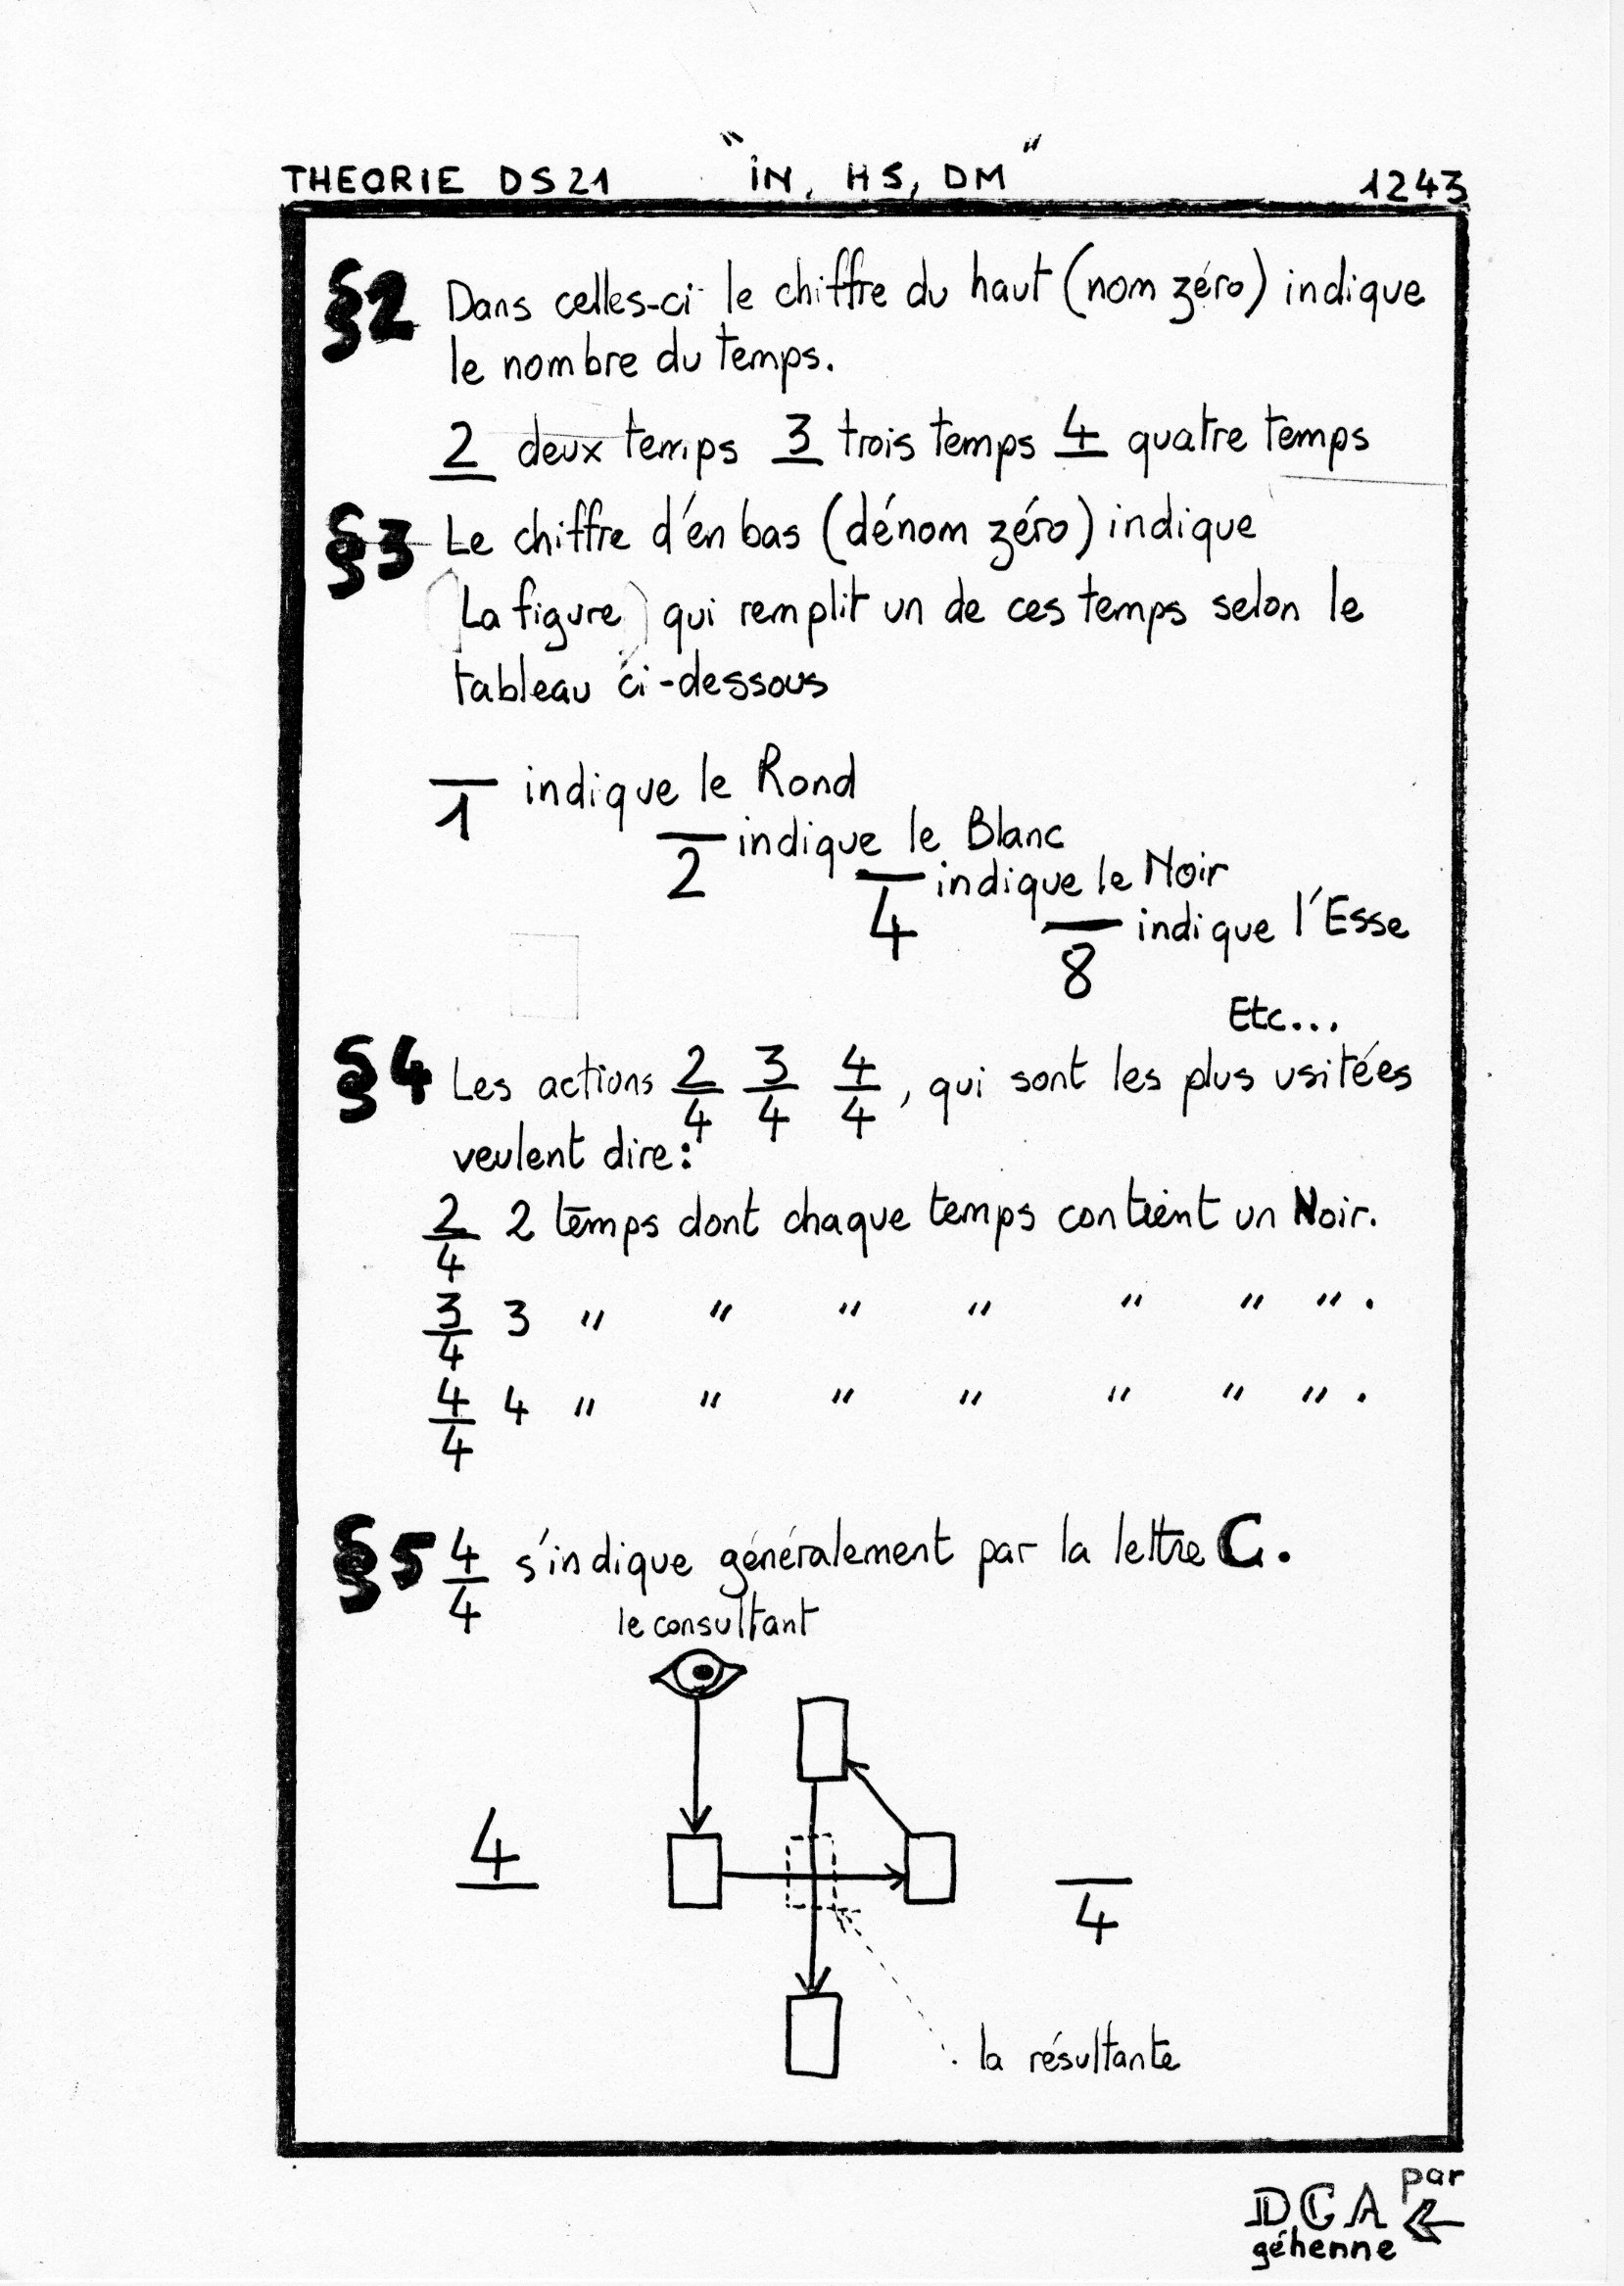 page 1243 Théorie D.S. 21 IN, HS, DM